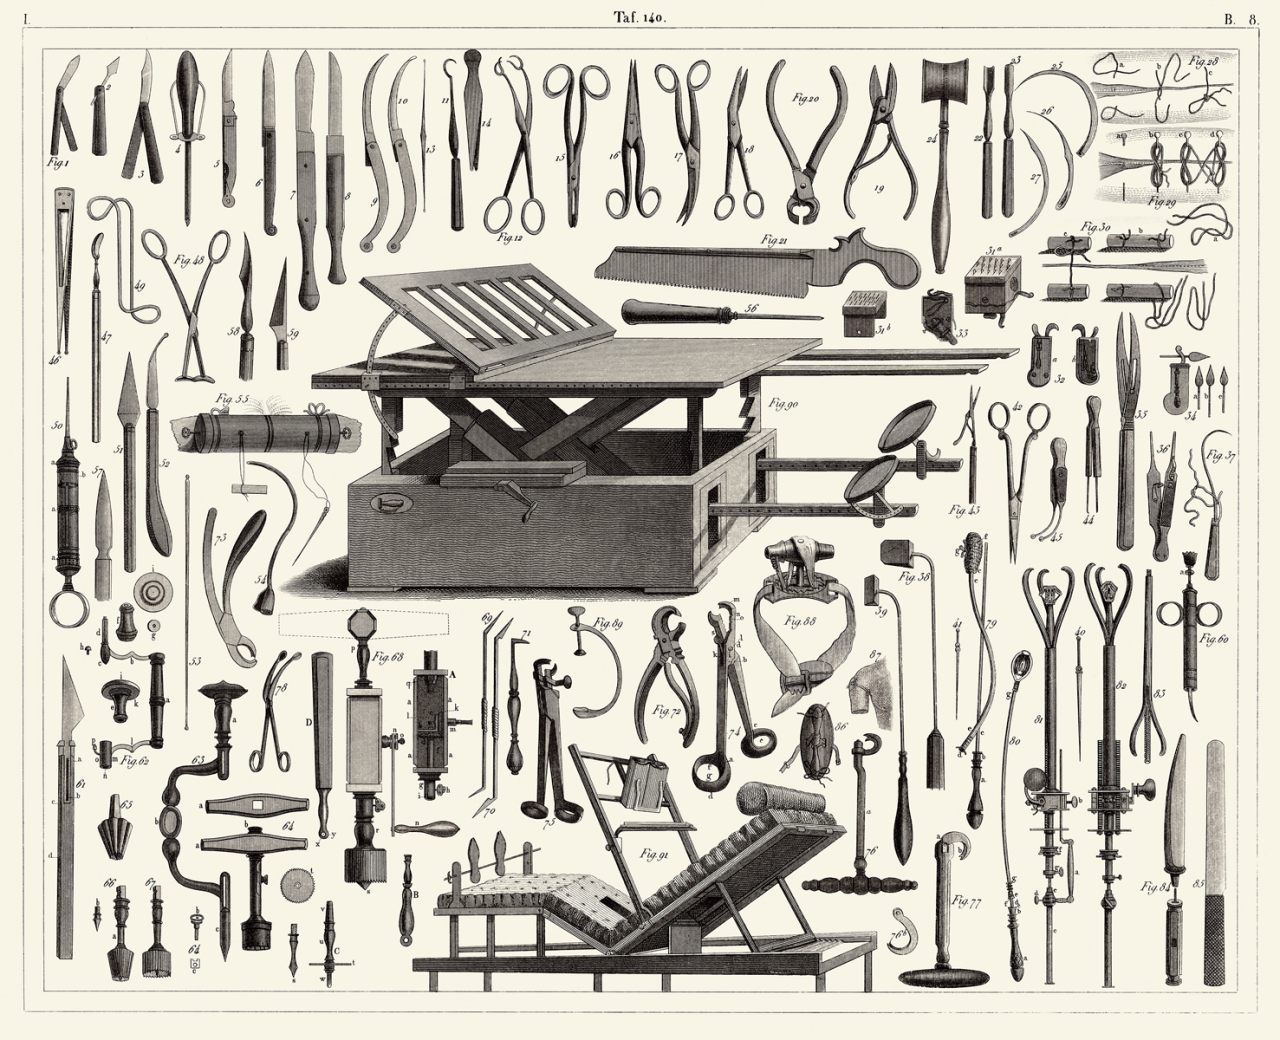 19thCentury-Surgical-equipment-inkbluesky.png